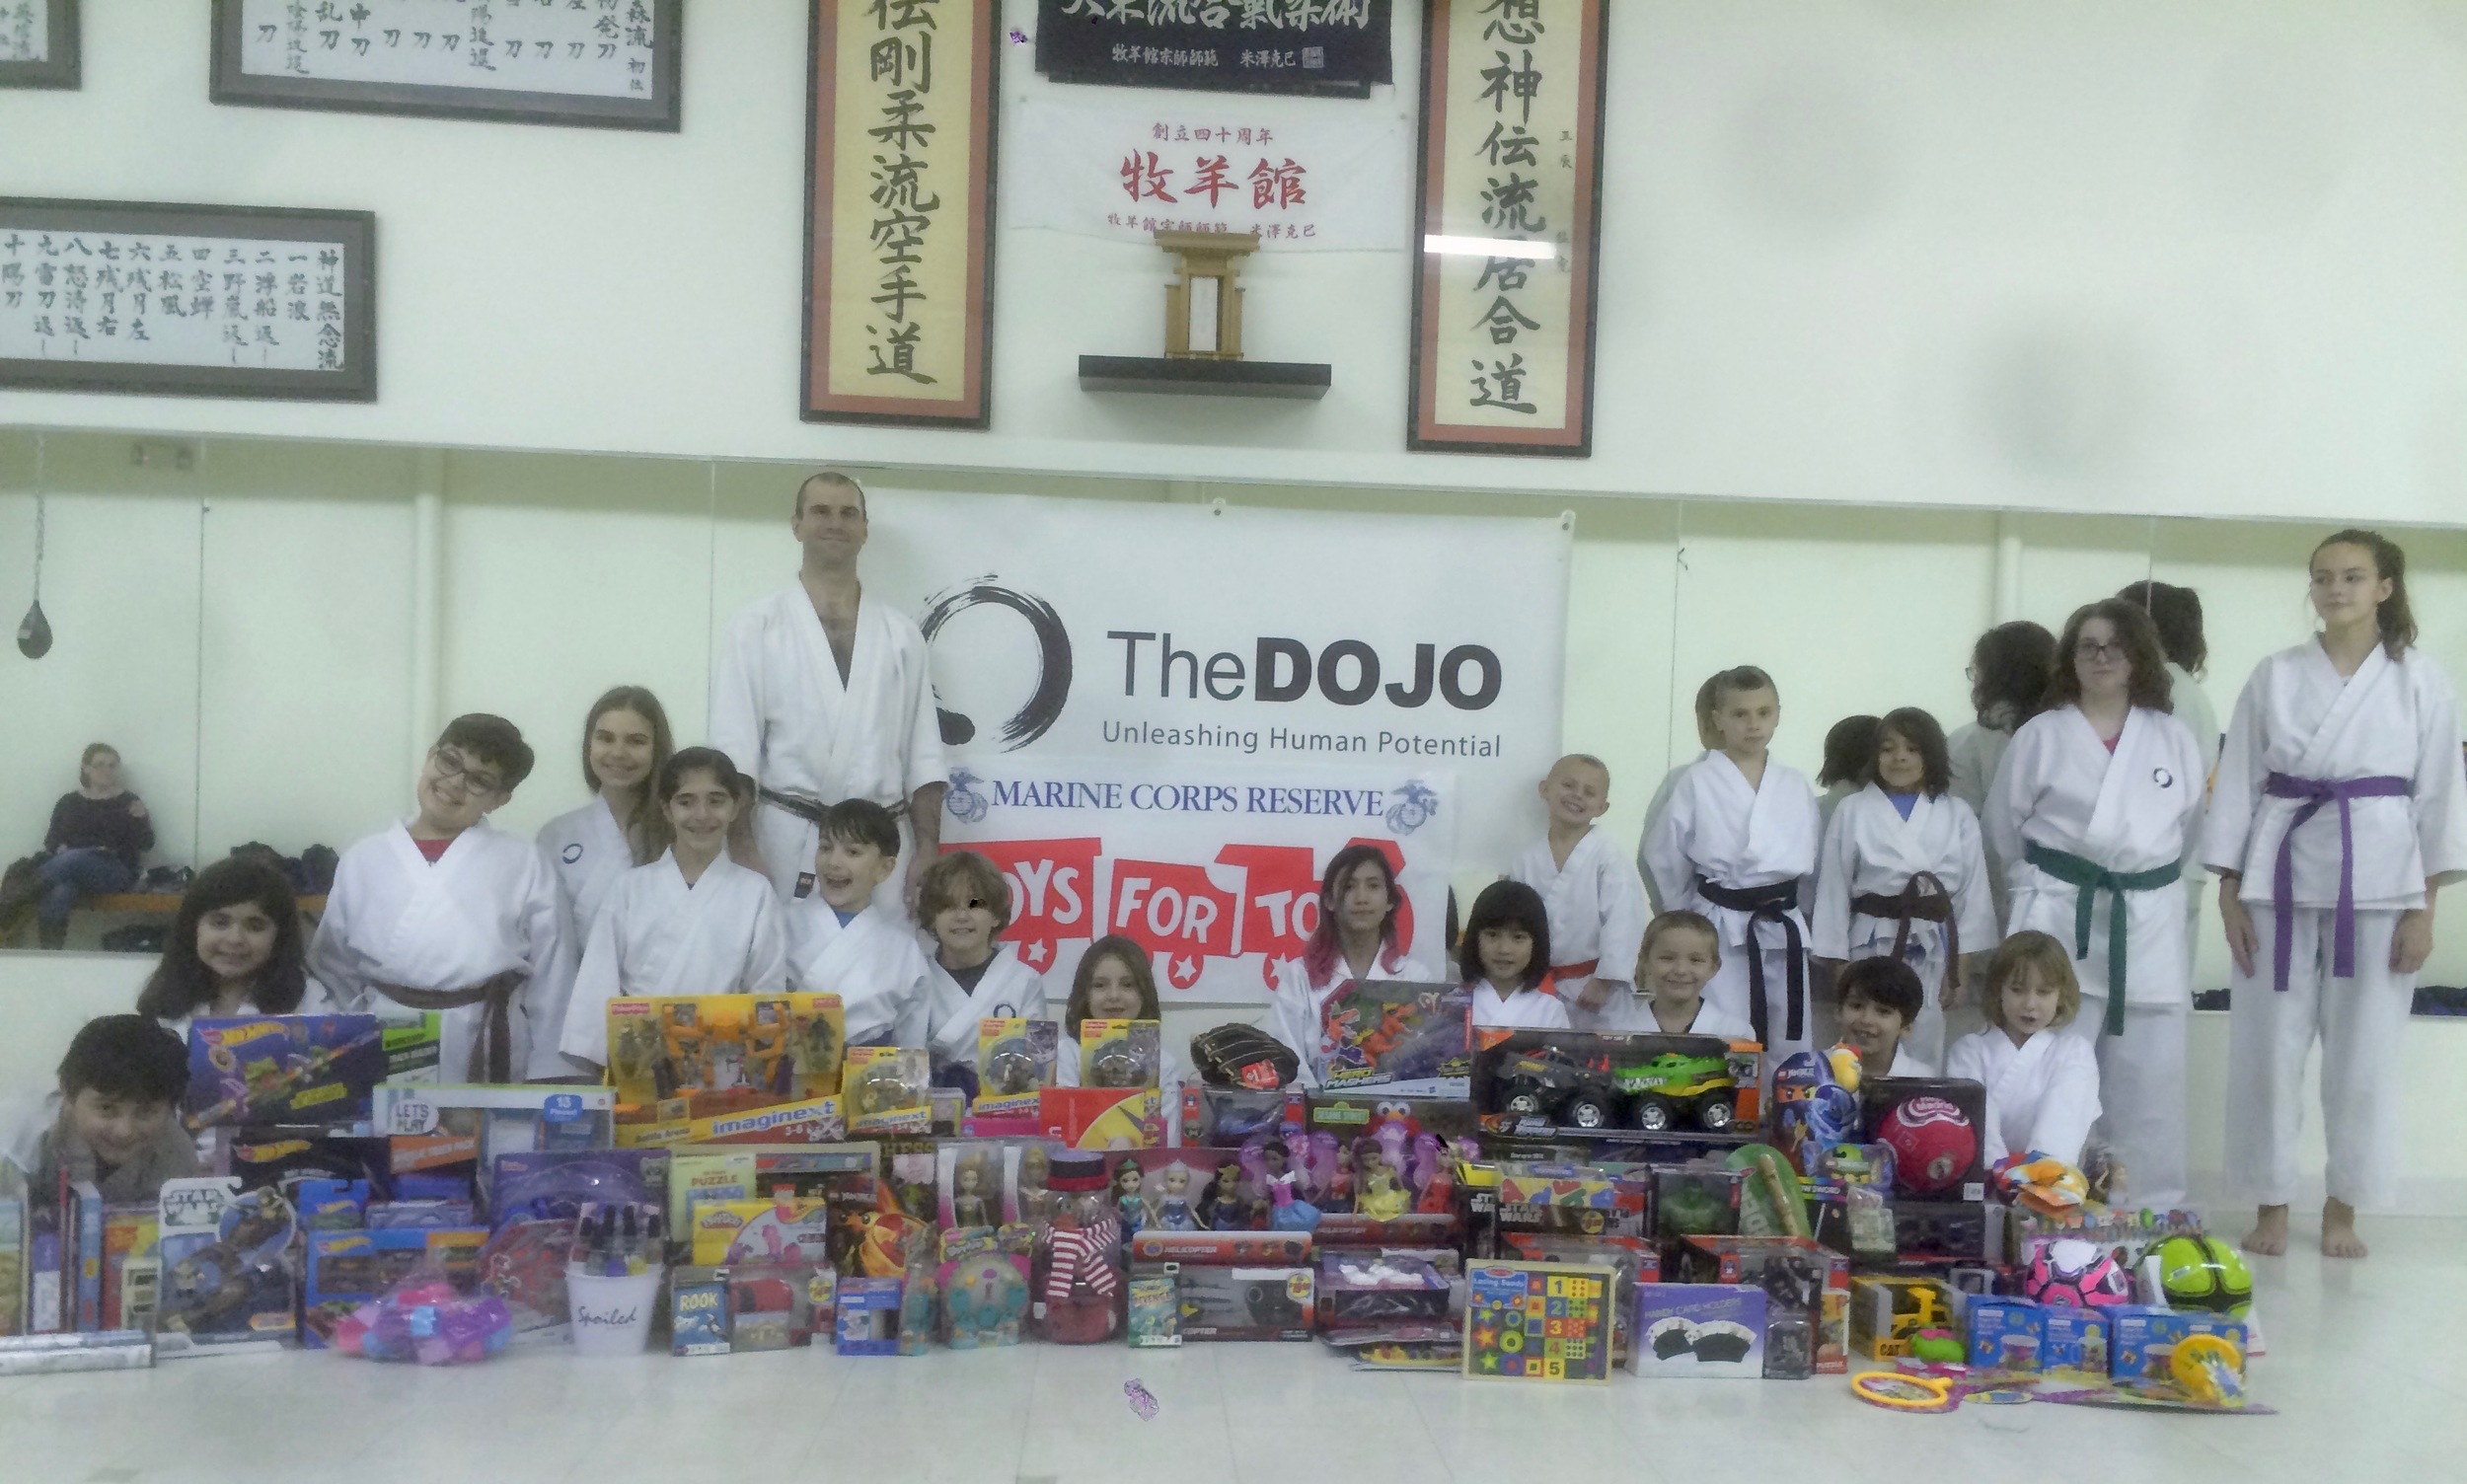 toys-for-tots---thedojo-toy-drive_23203017143_o.jpg